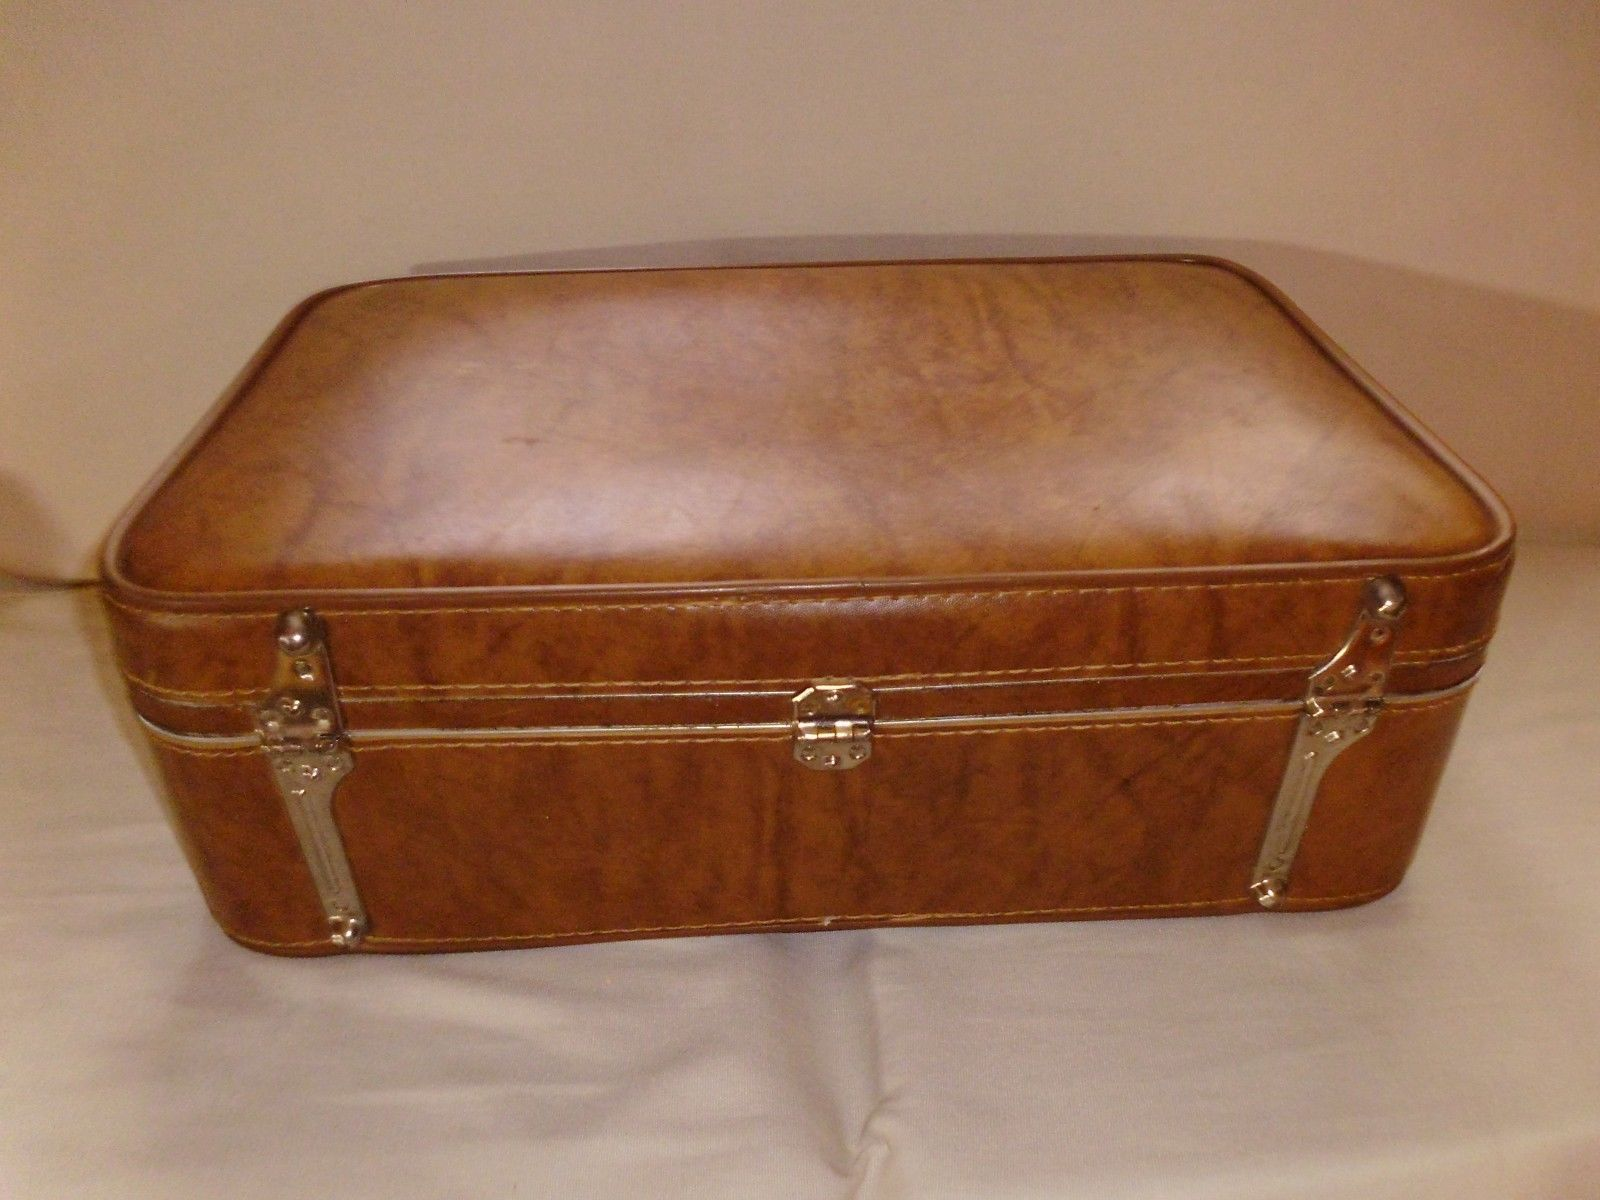 Vintage Amelia Earhart Wallstreeter Suitcase Luggage,Tan-With Key